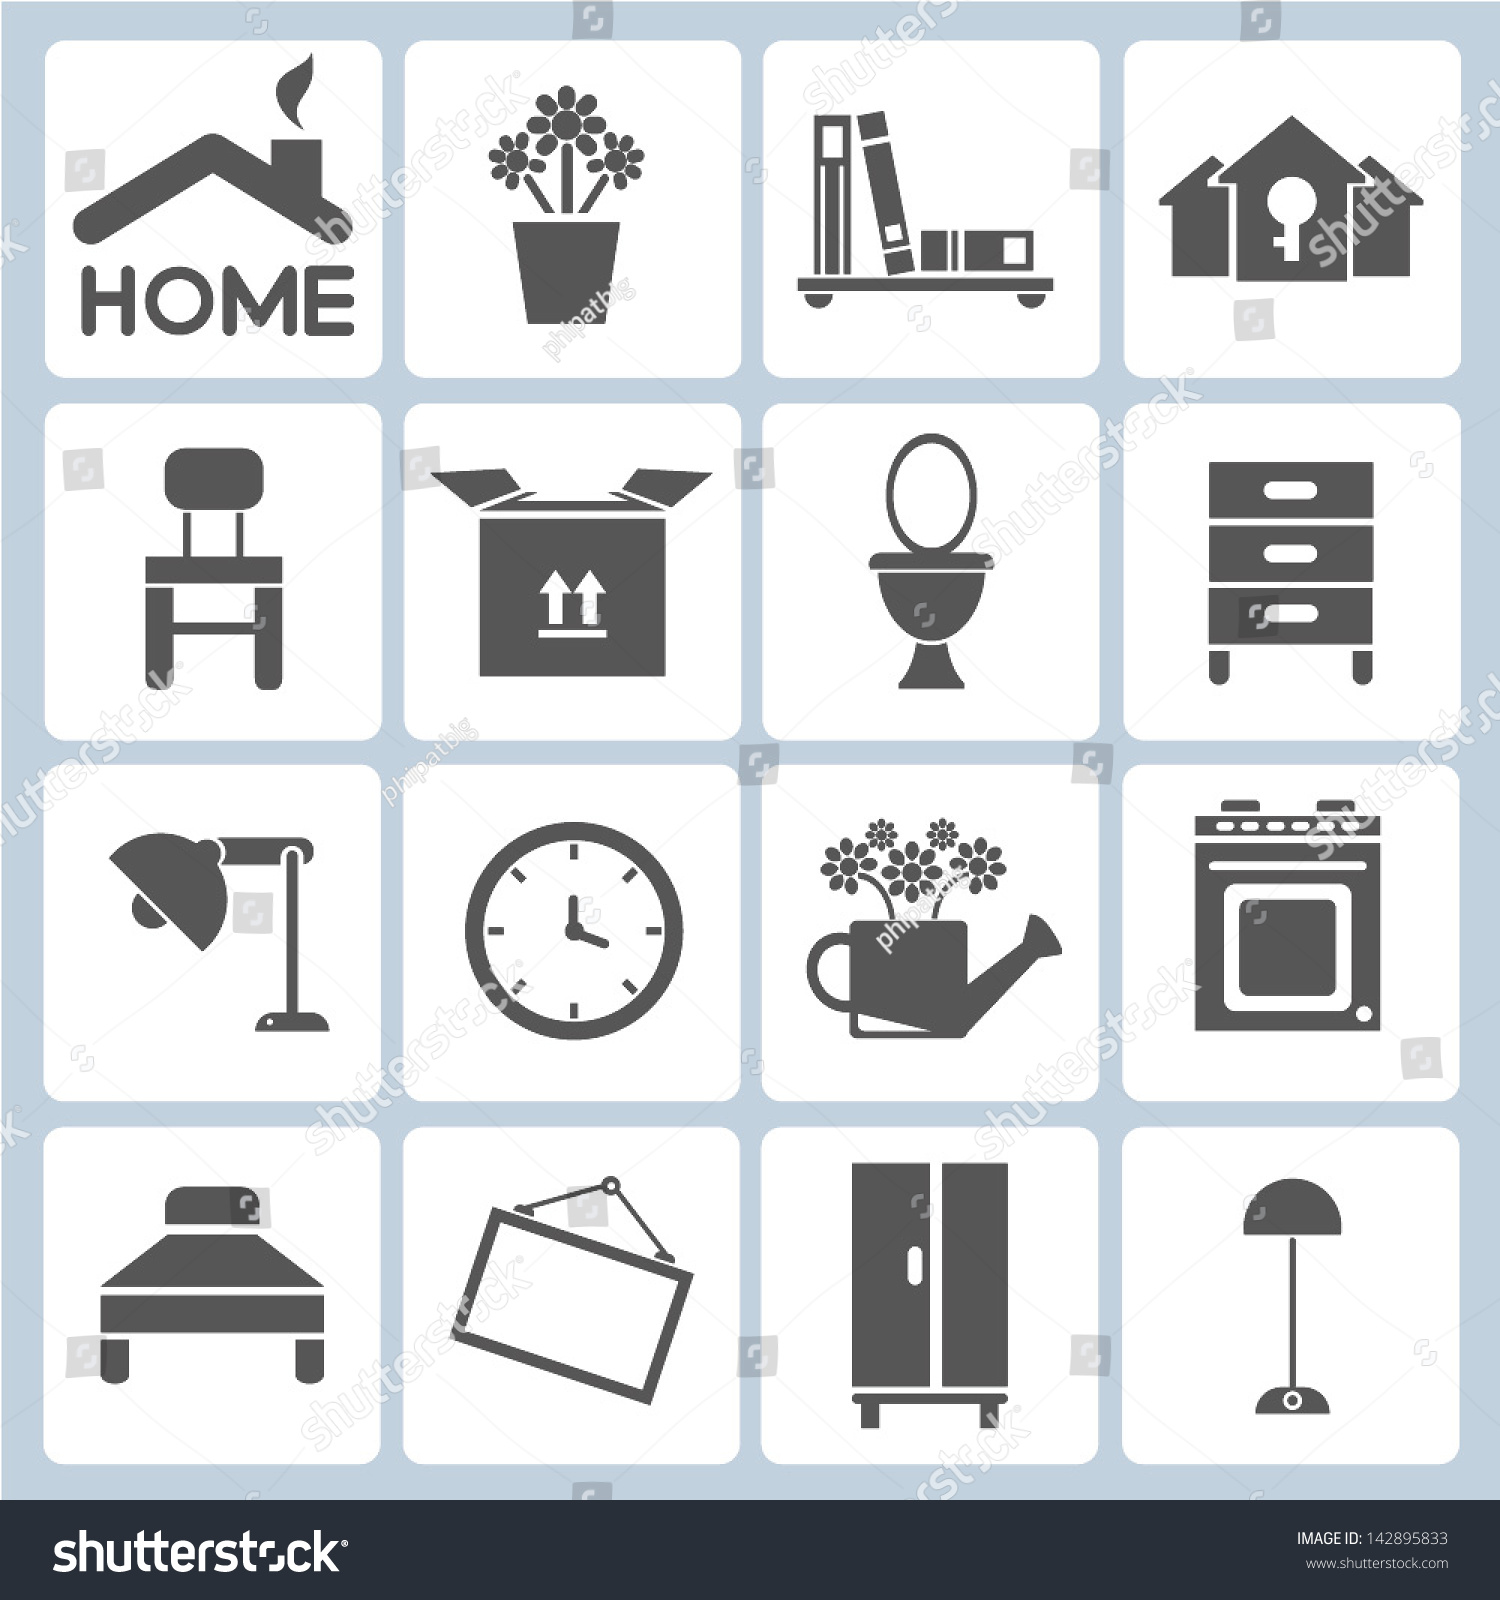 Home icons furniture interior design icon stock vector 142895833 shutterstock Kave home furniture design